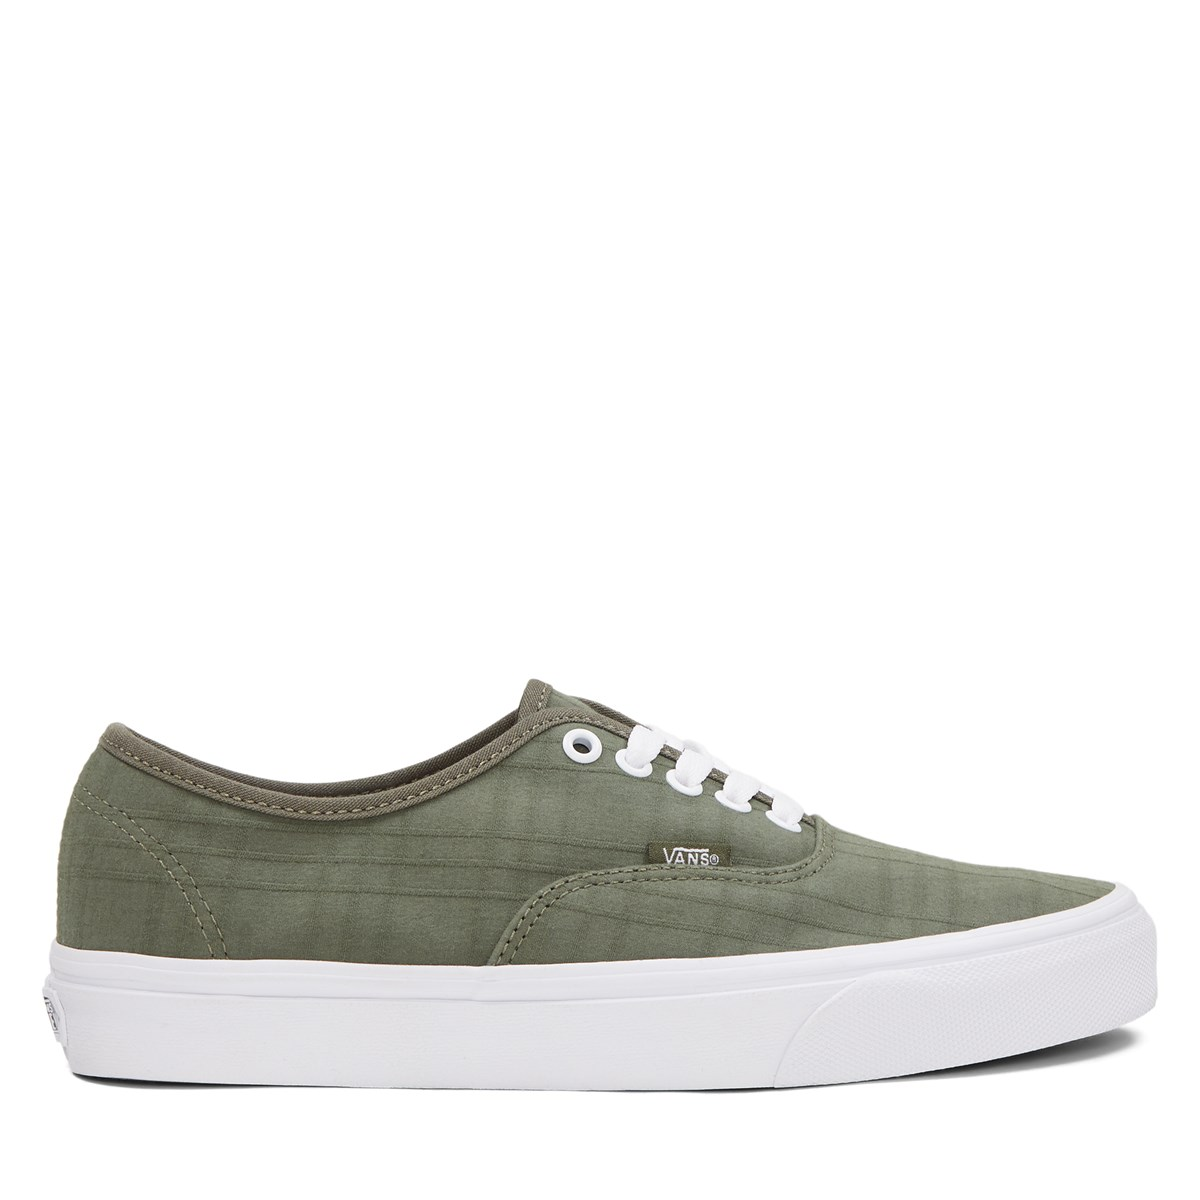 Men's Authentic Sneakers in Green Plaid